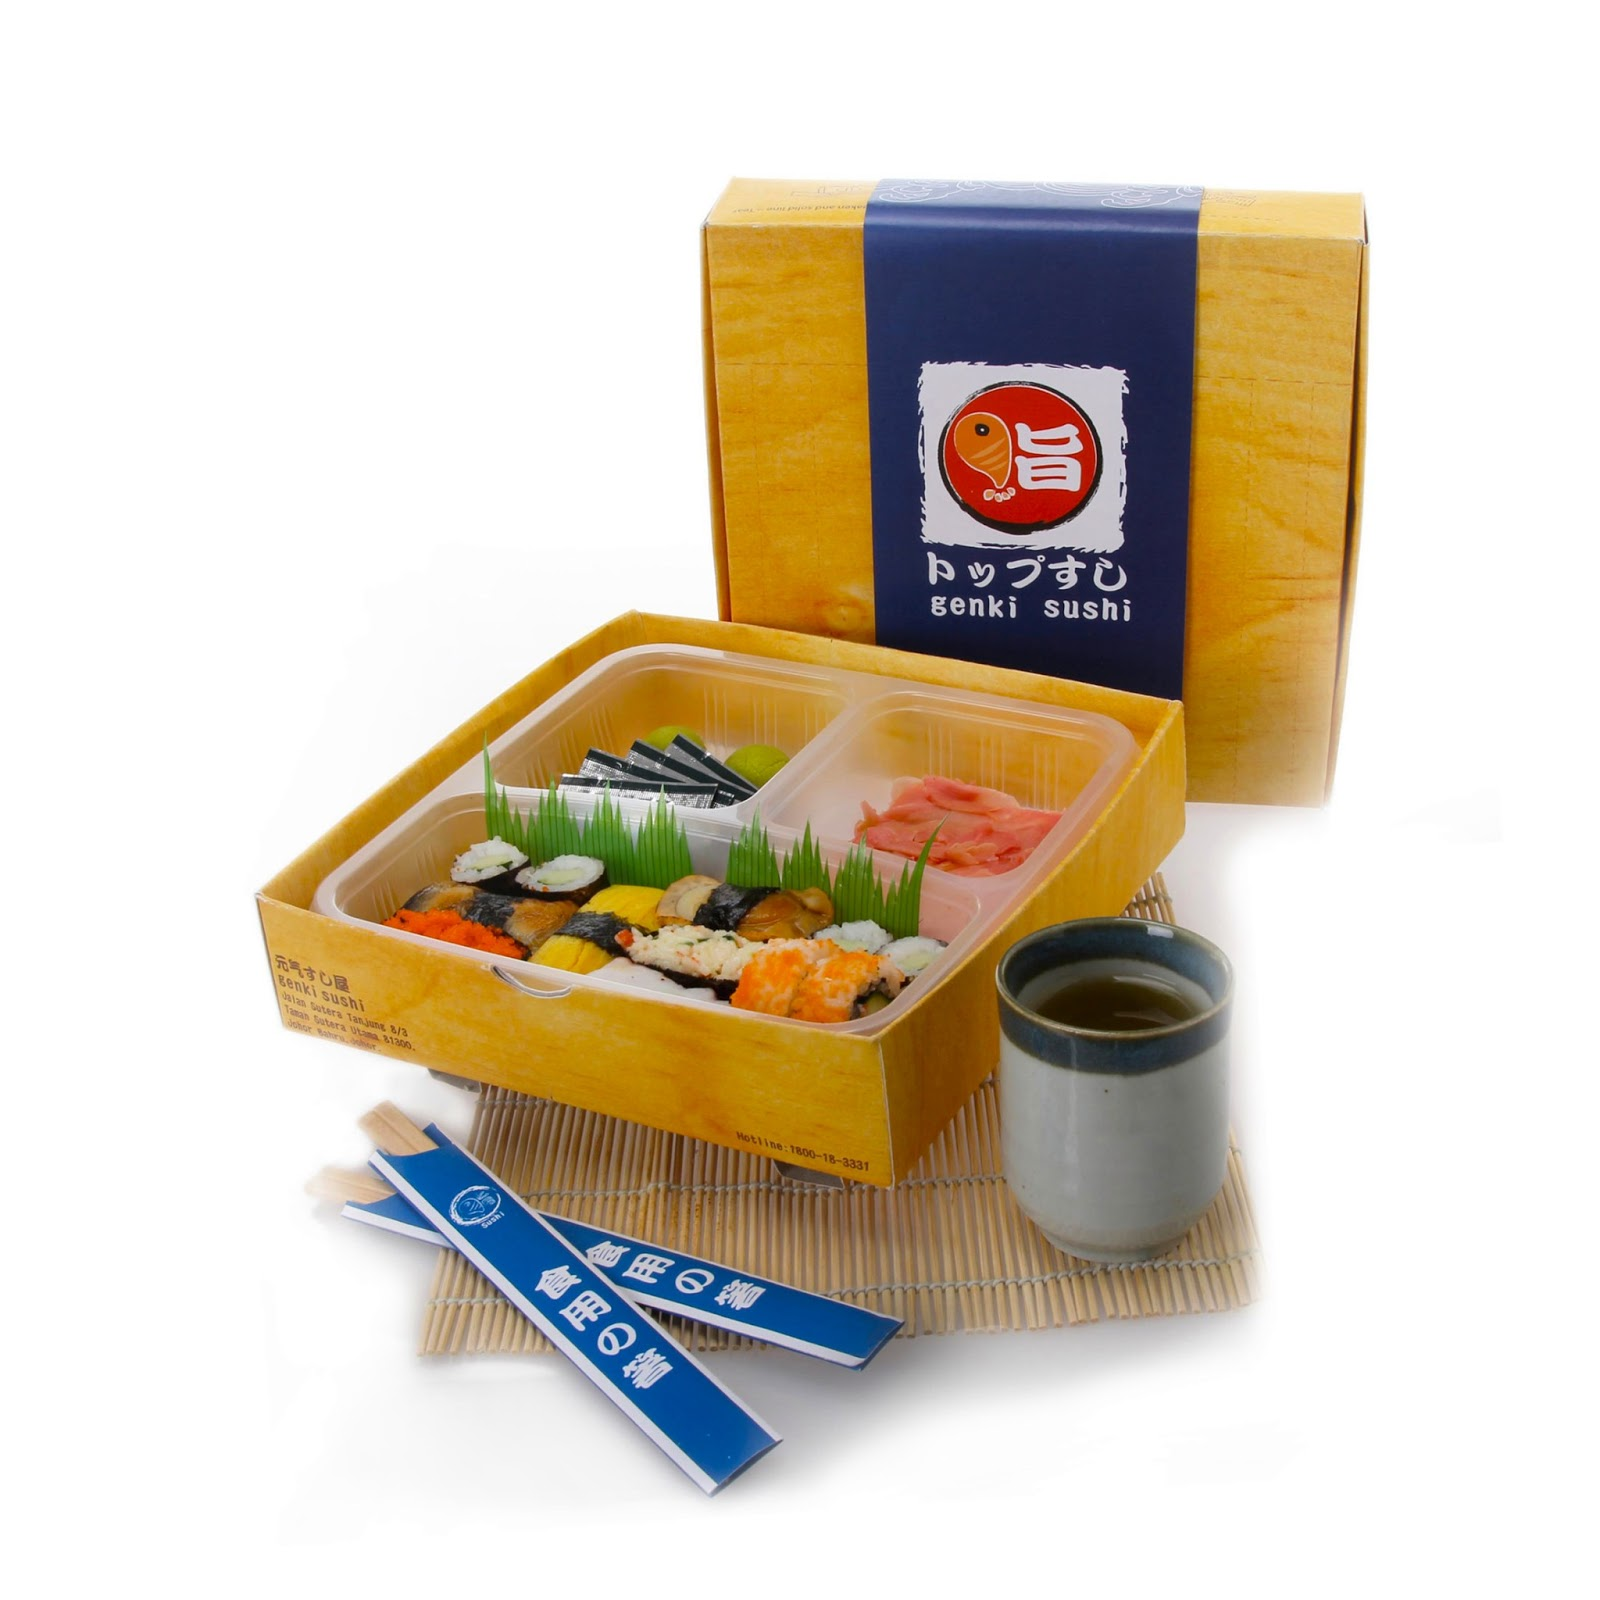 Genki Sushi Take Away Student Project On Packaging Of